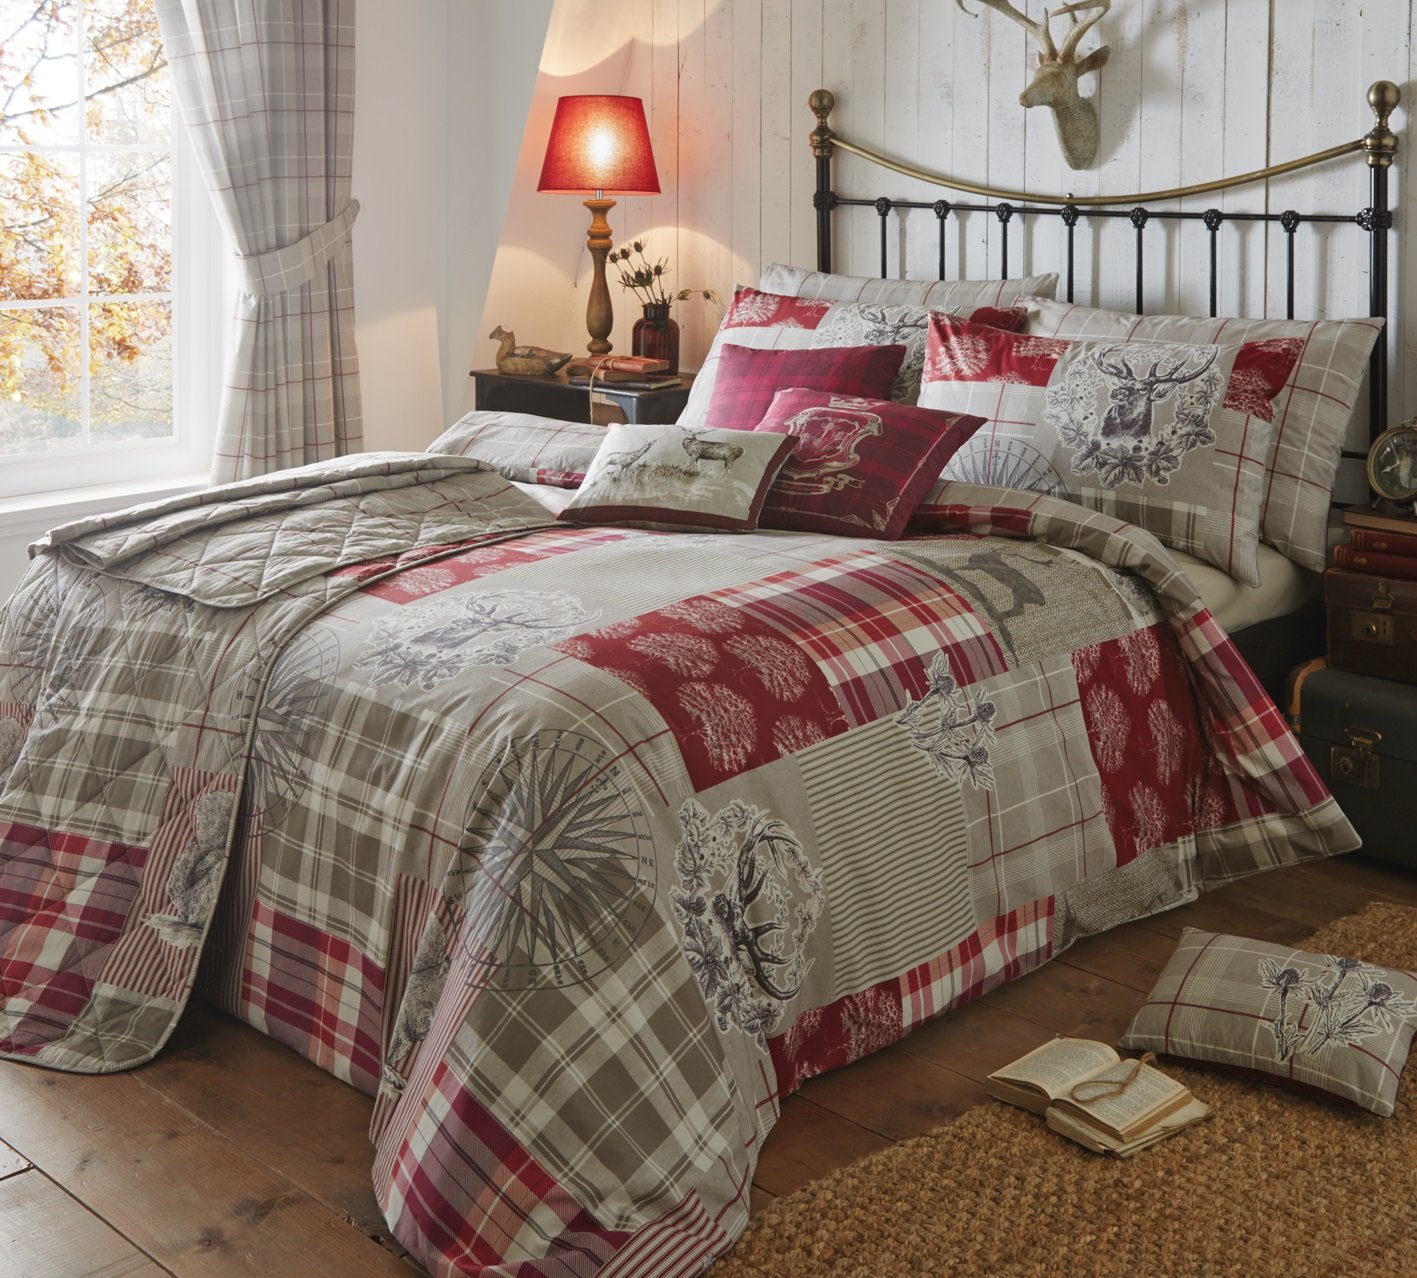 Tatton Patchwork' Single Duvet Cover Set in Heather, Includes: 1x ... : patchwork quilt covers - Adamdwight.com